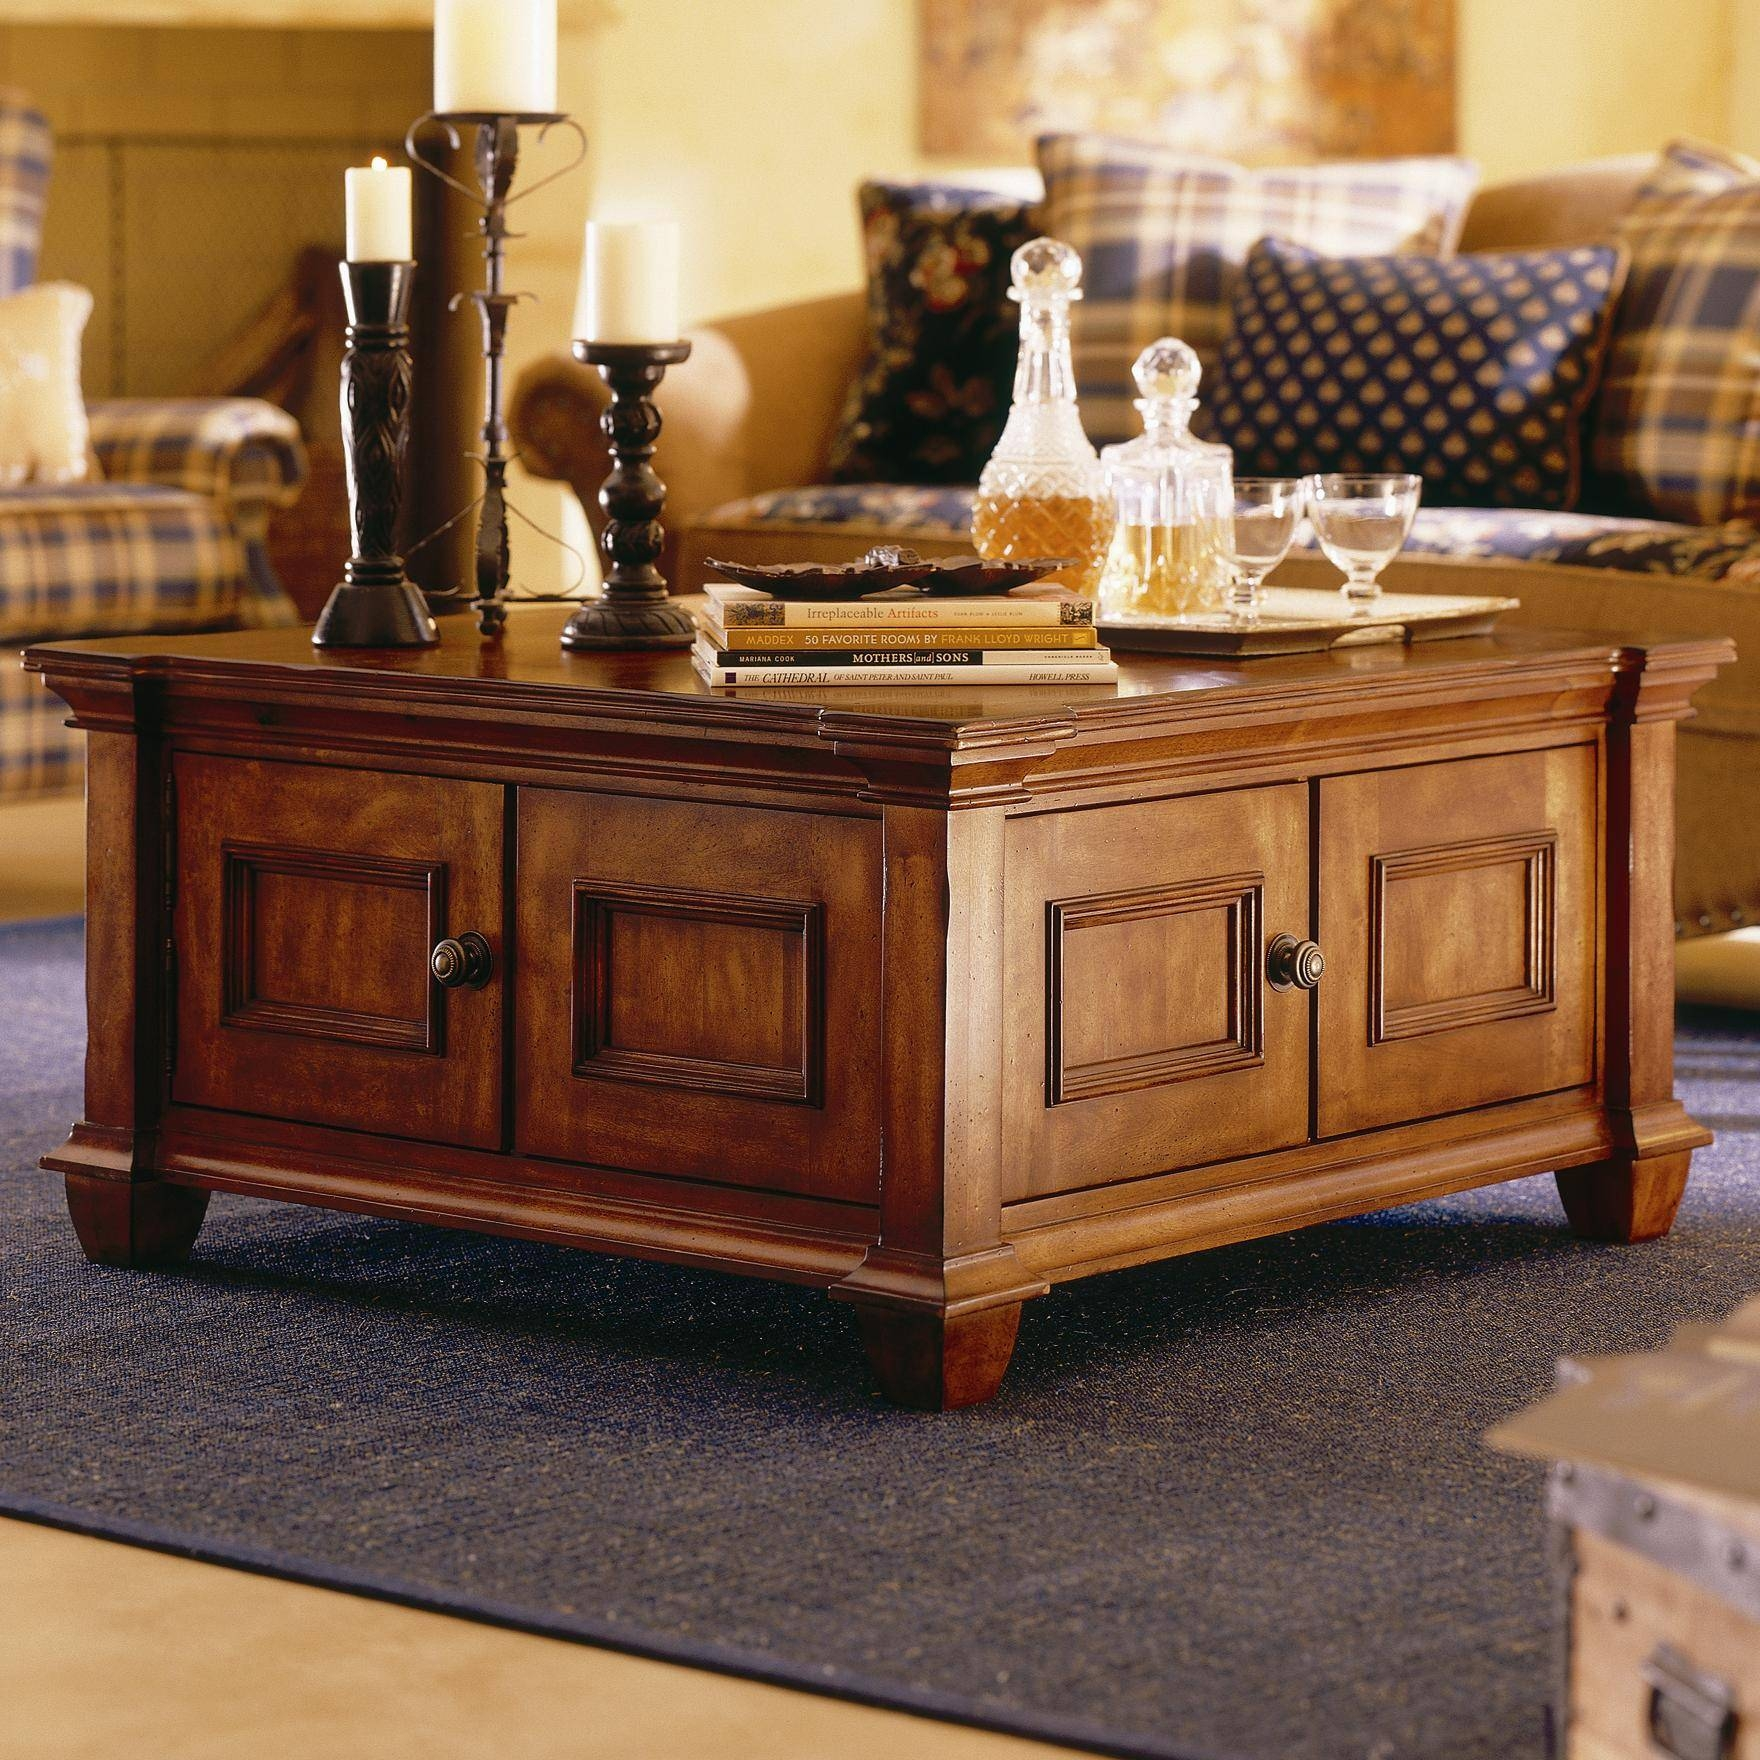 Kanson Square Coffee Table With Storage Cubes | Coffee Tables For Square Coffee Tables (View 16 of 30)